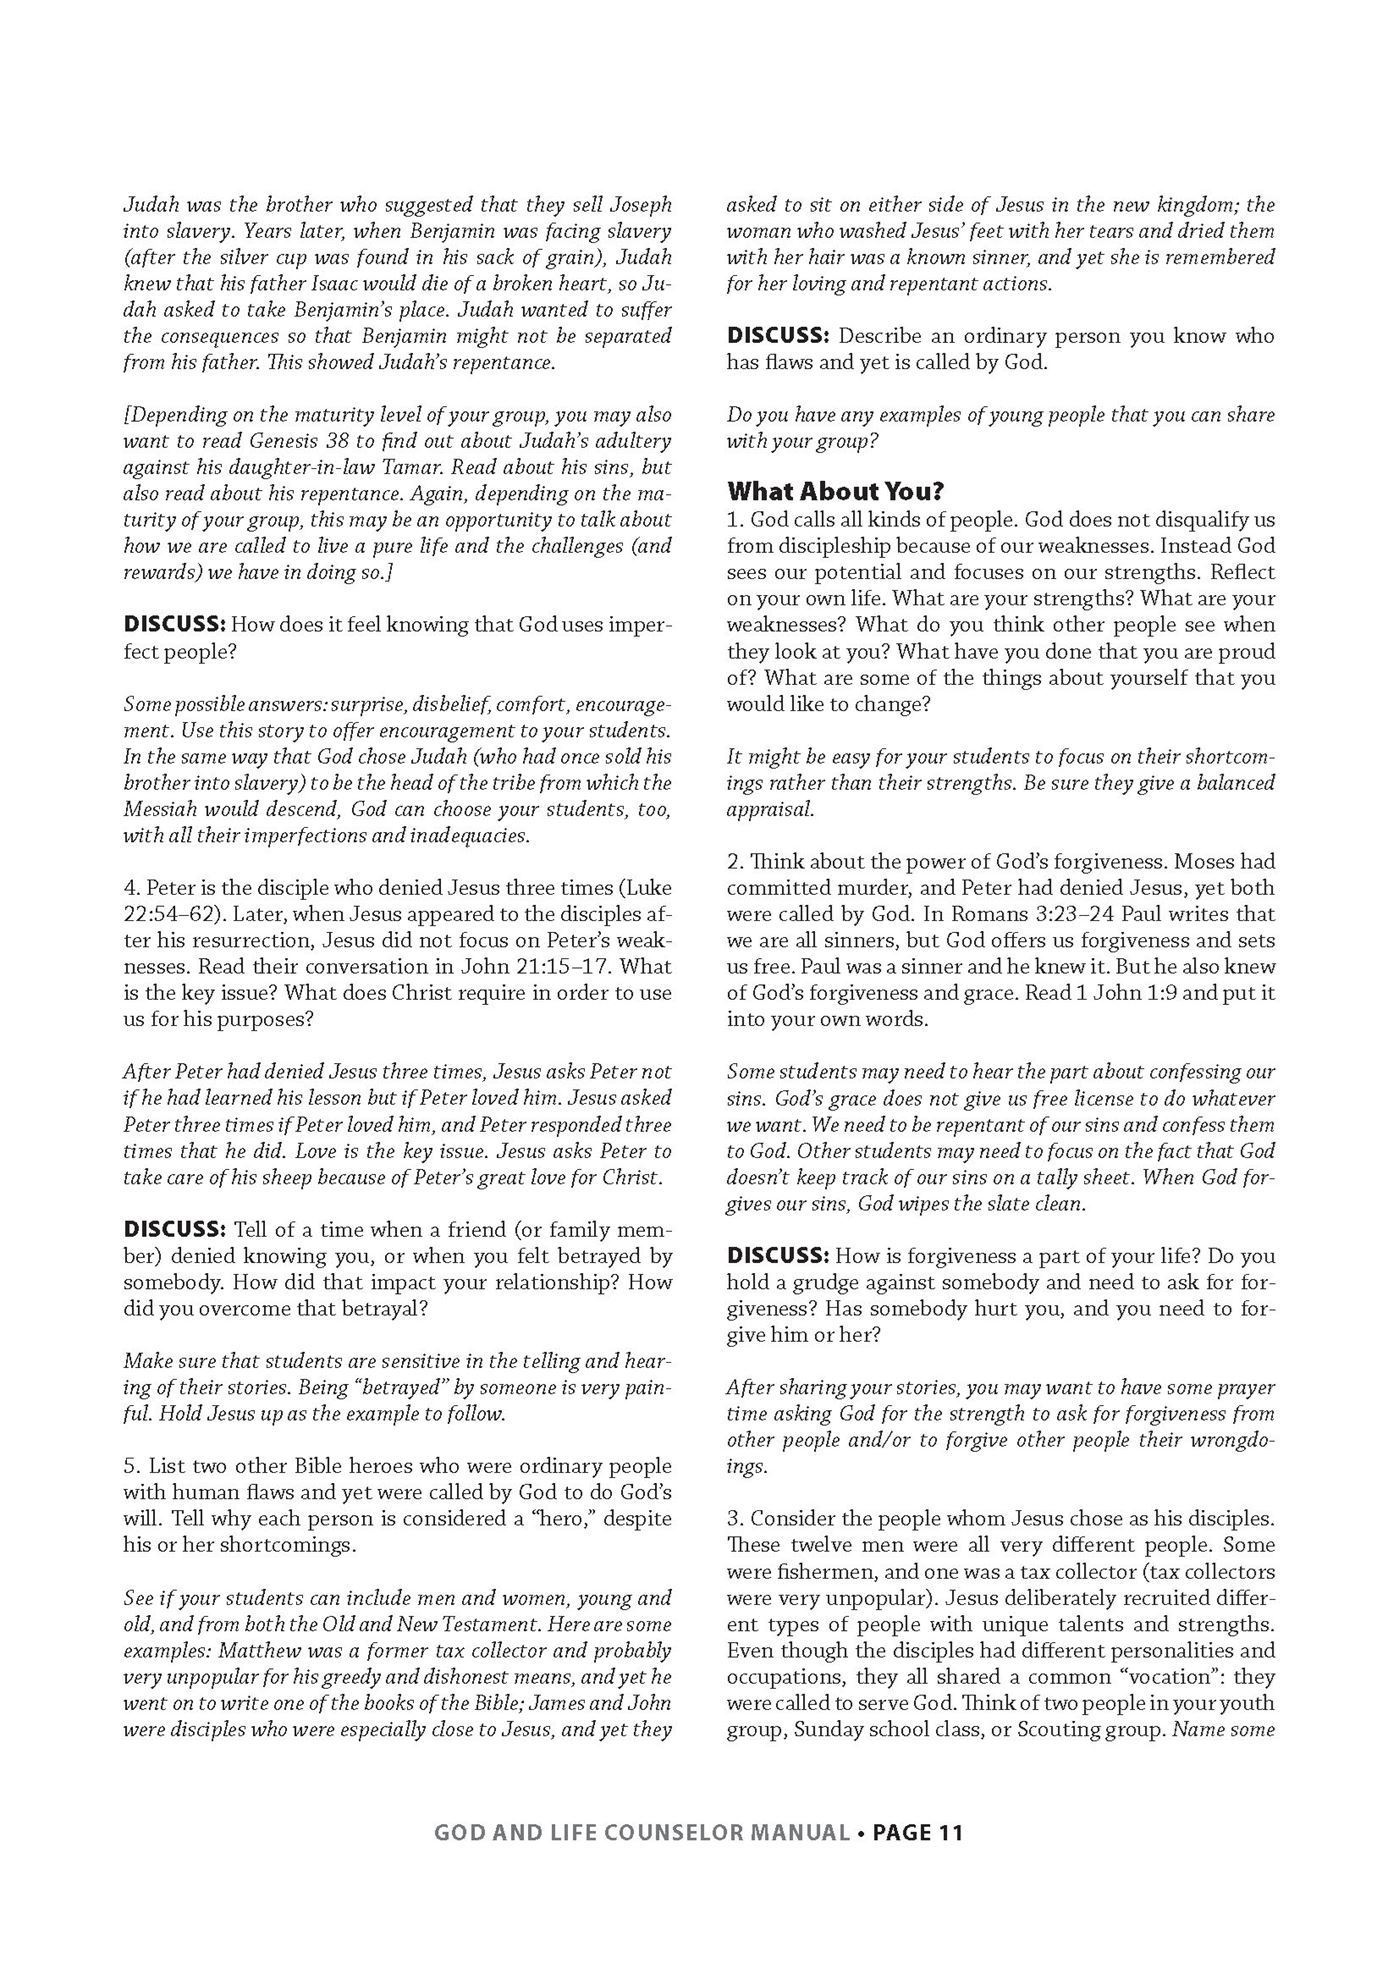 God & Life Counselor/Teacher Manual (Required)